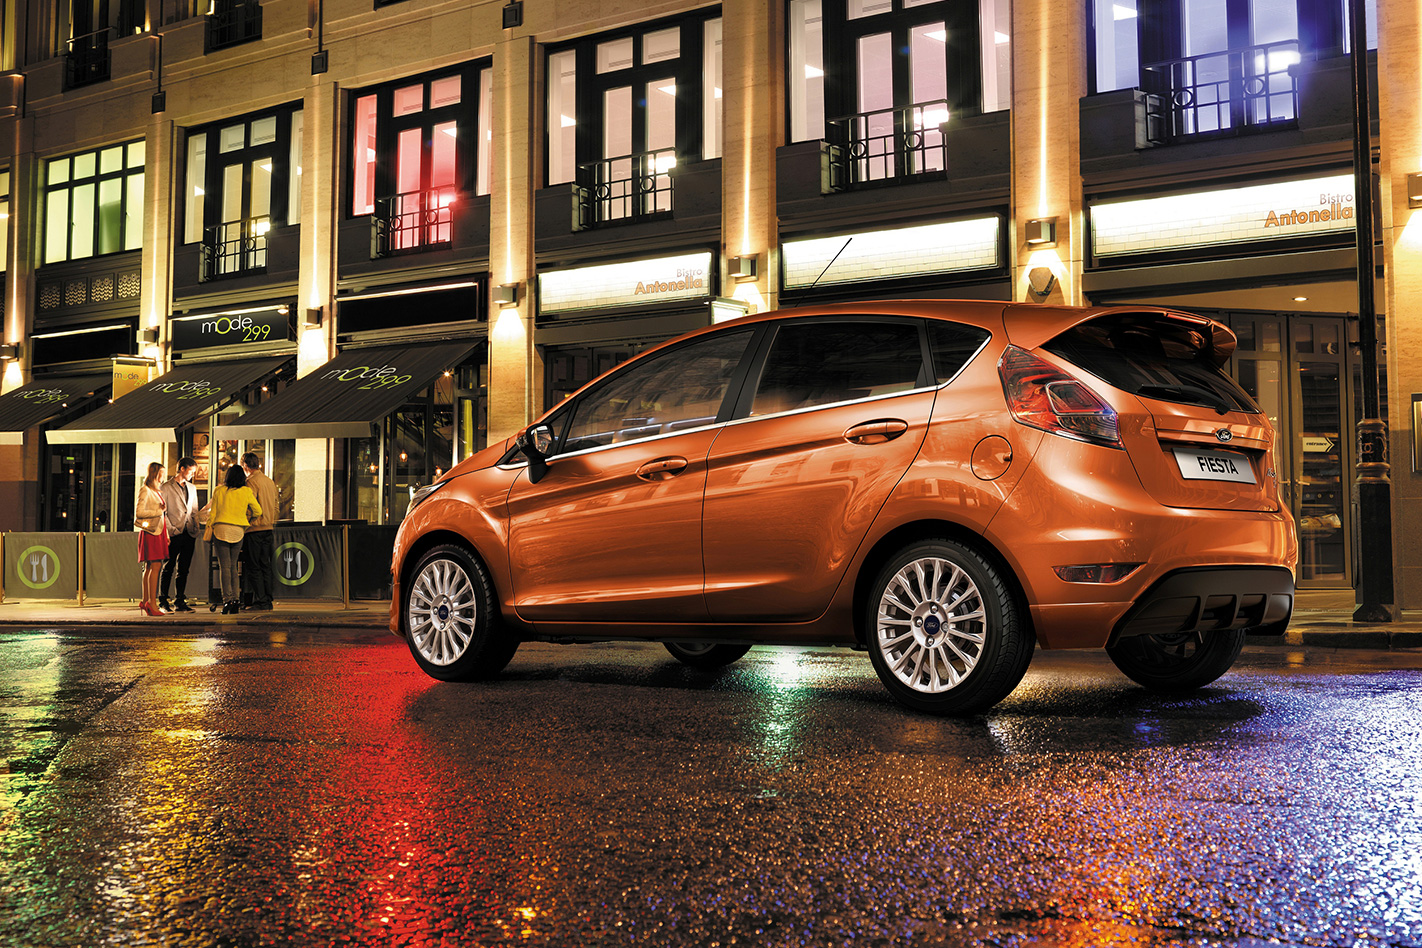 Ford pulls the plug on the Fiesta